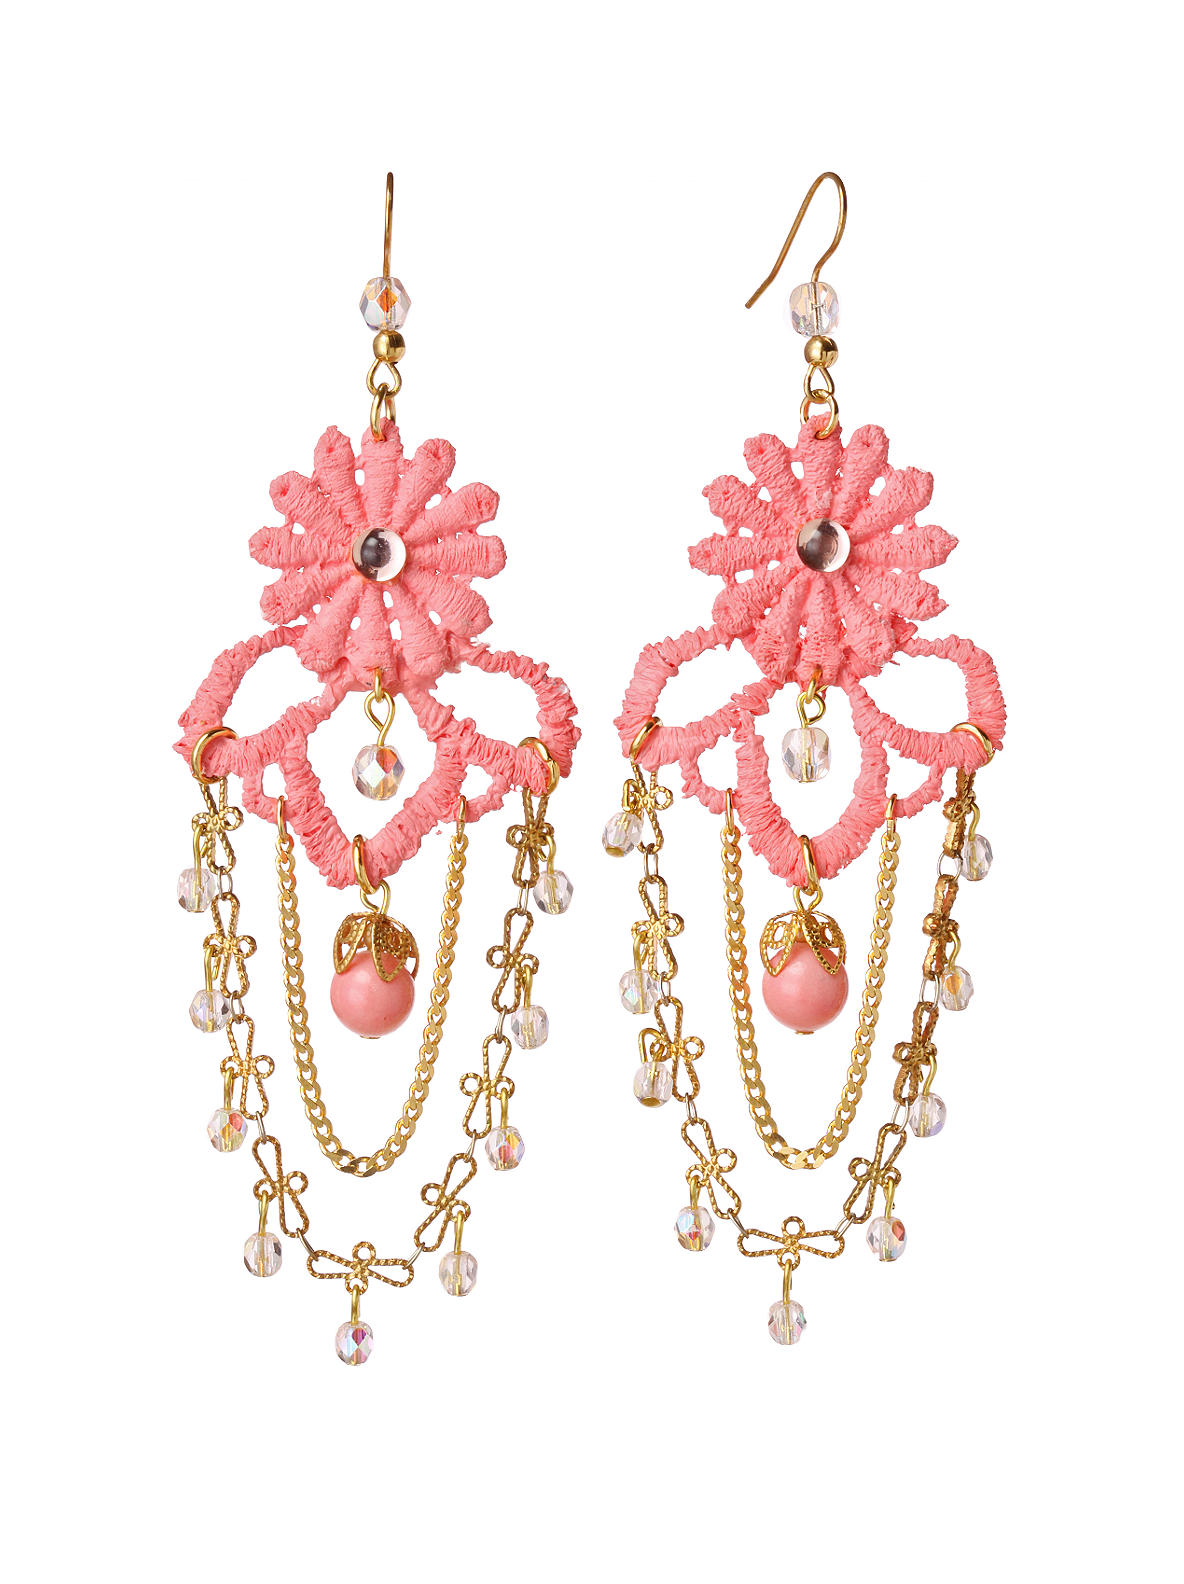 Lace Swing Earrings - Anthropologie.com :  earring pink fashion anthropologie